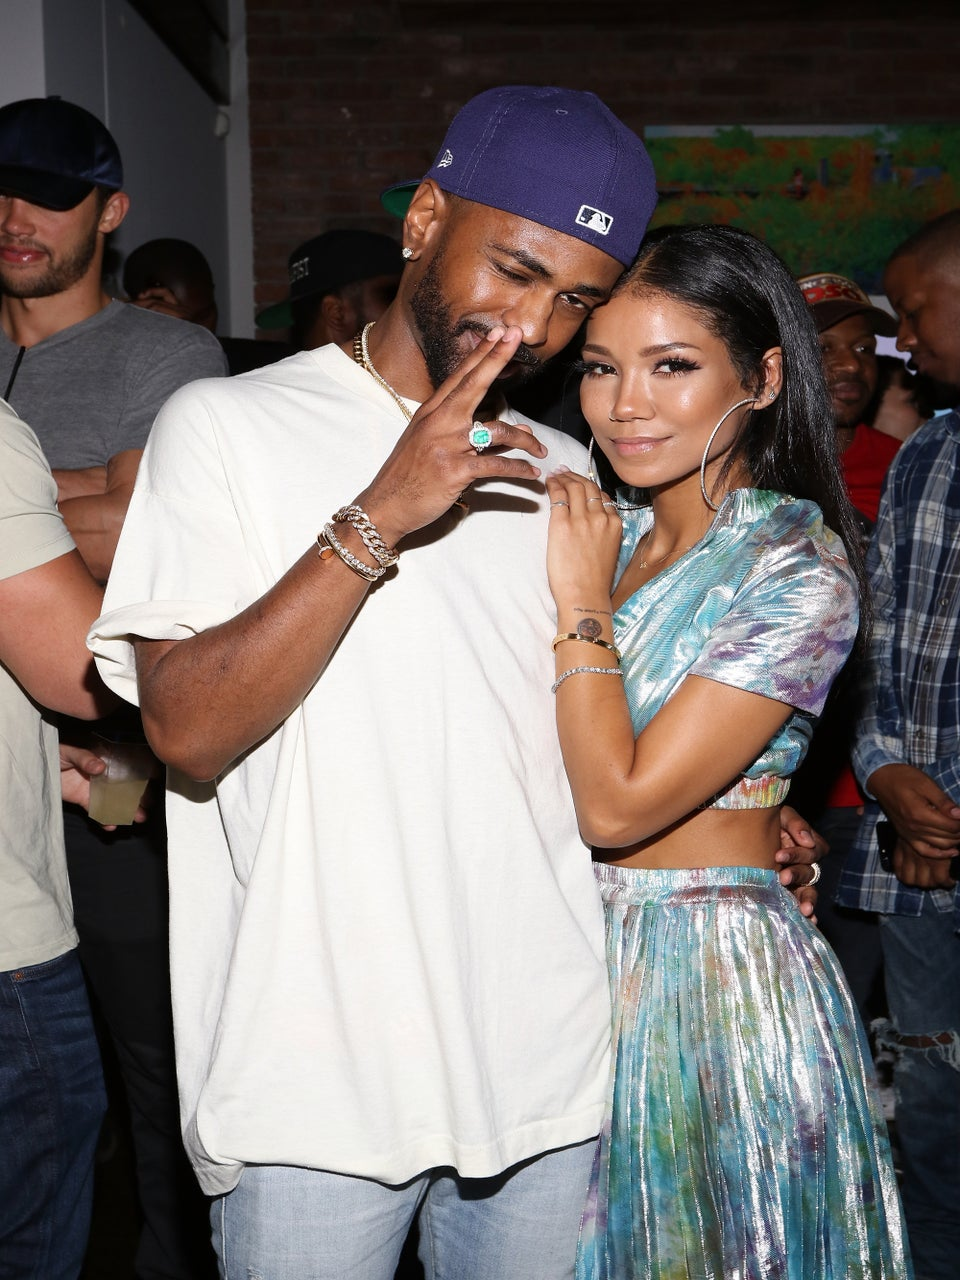 Jhené Aiko Has A Very Realistic Big Sean Tattoo